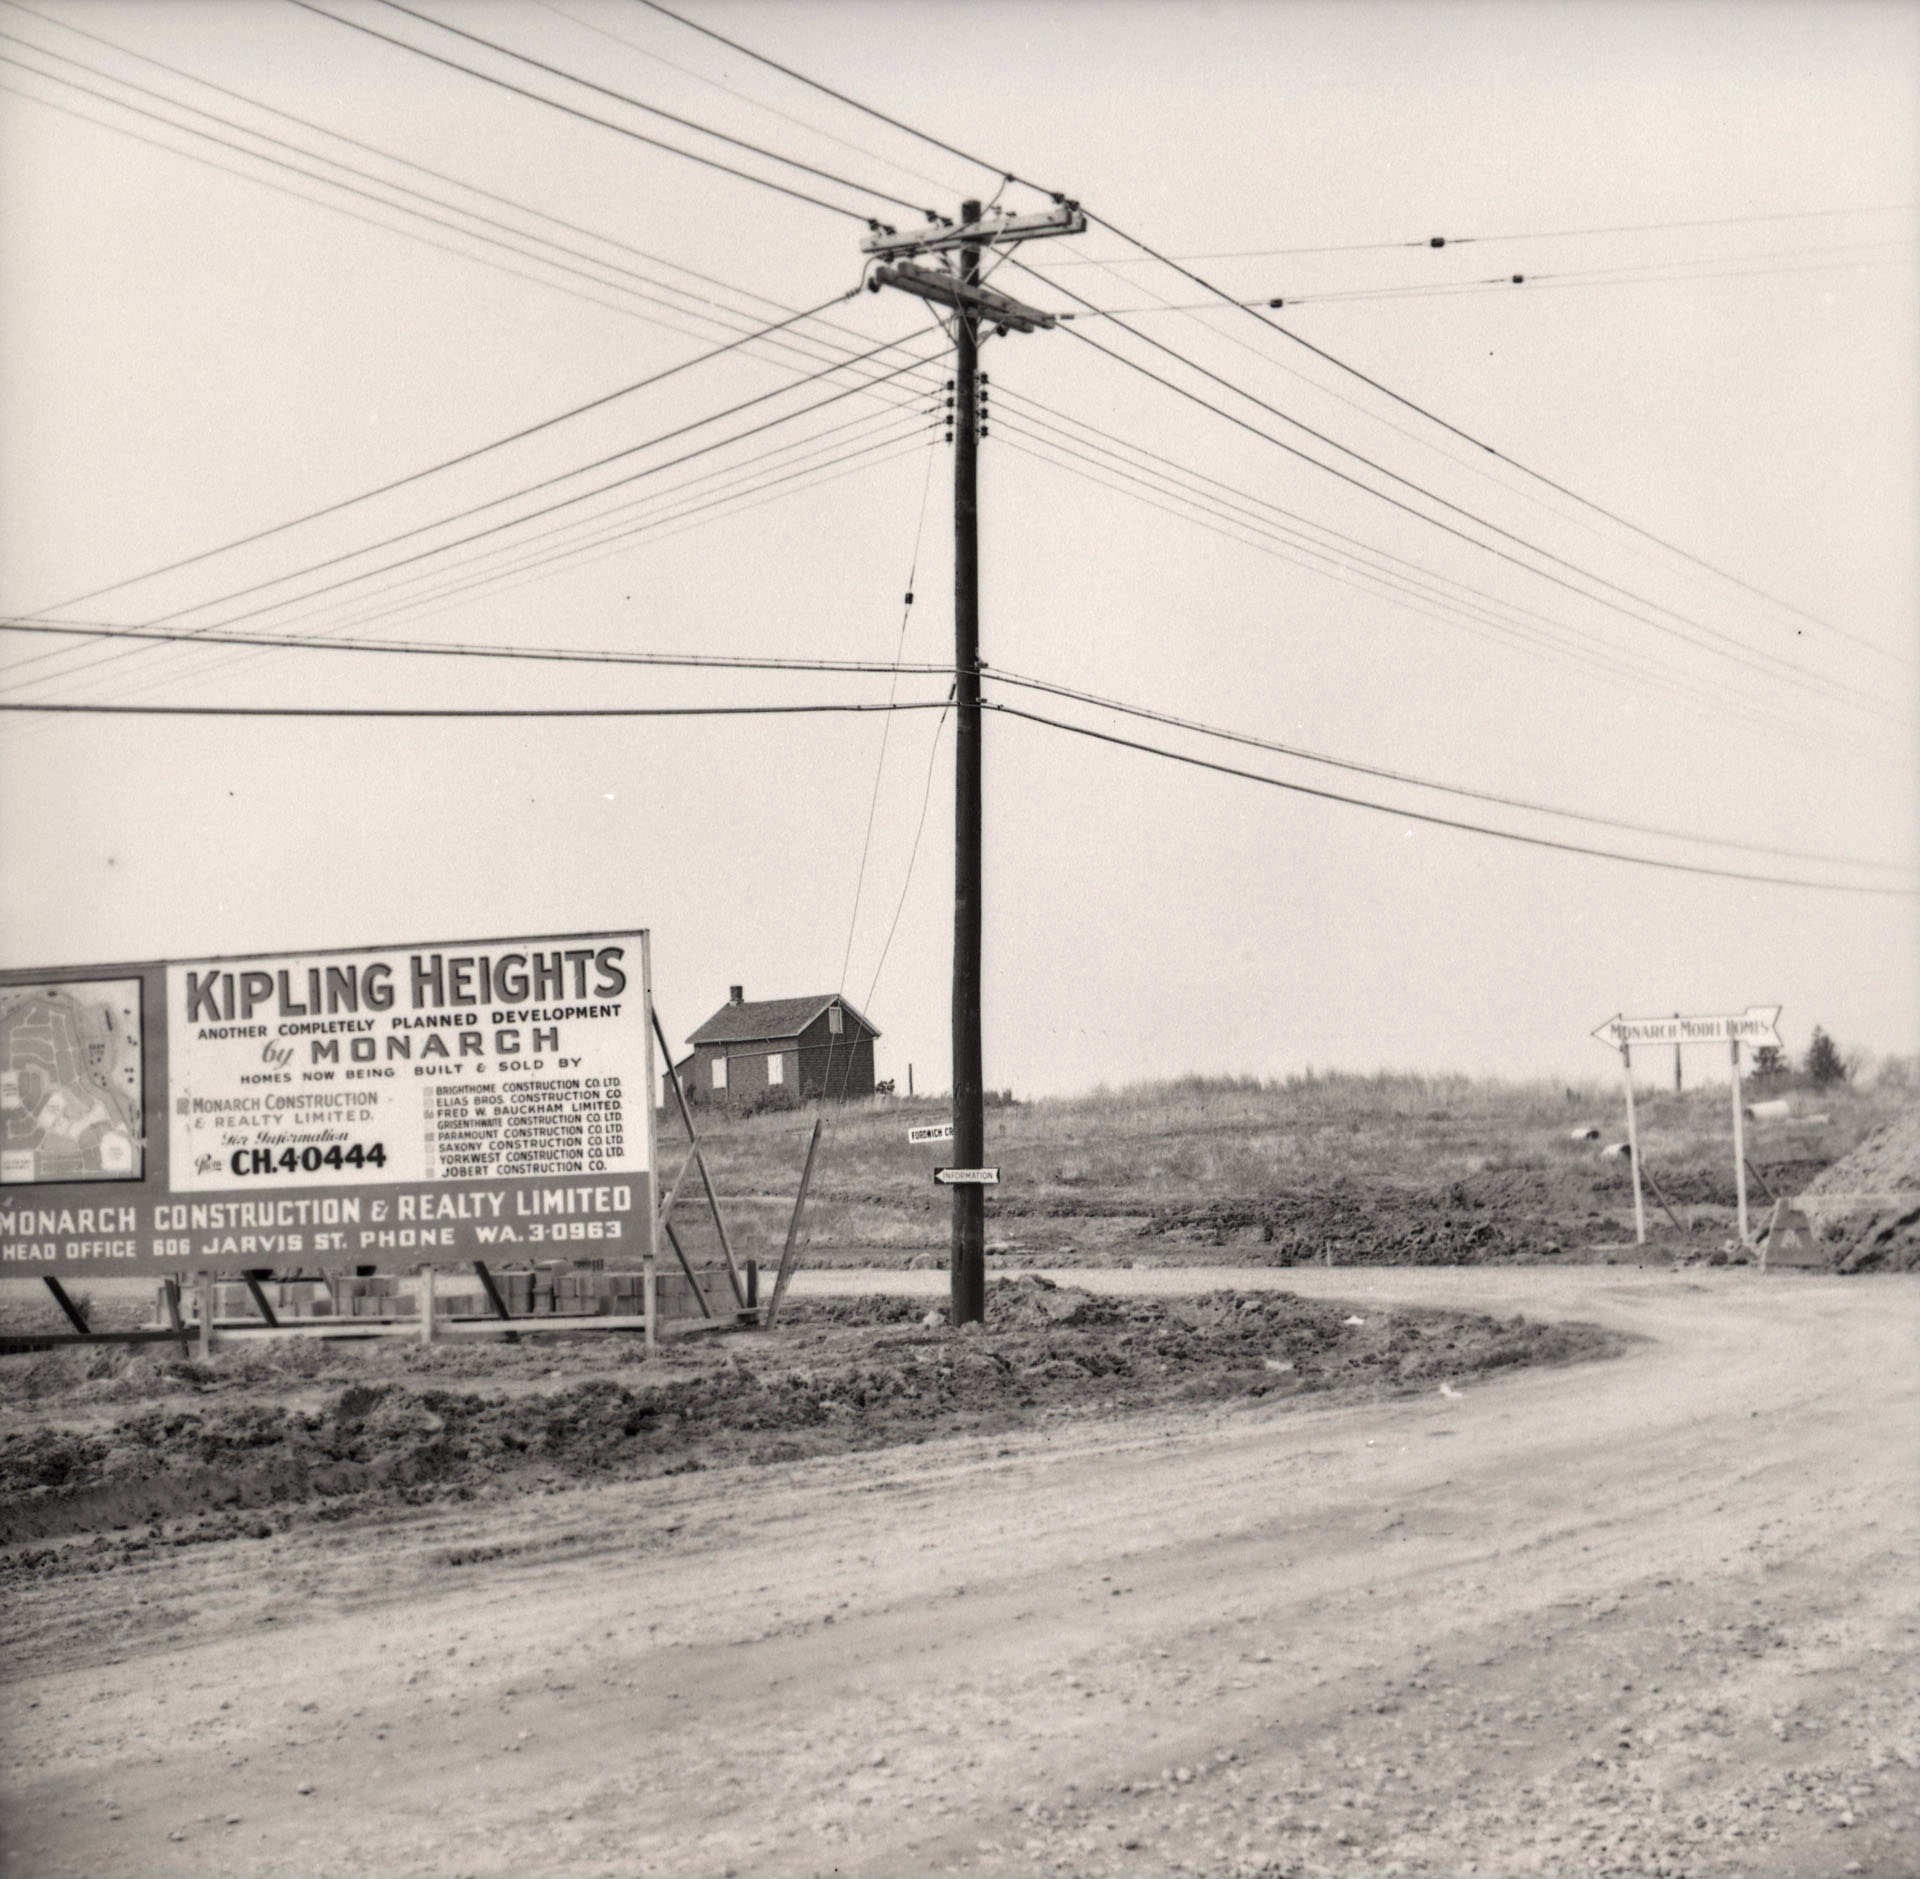 Kipling Heights, from Islington and Fordwich. October 23, 1955. Image: James Victor Salmon / Toronto Public Library, Baldwin Collection, S 1-3318A.